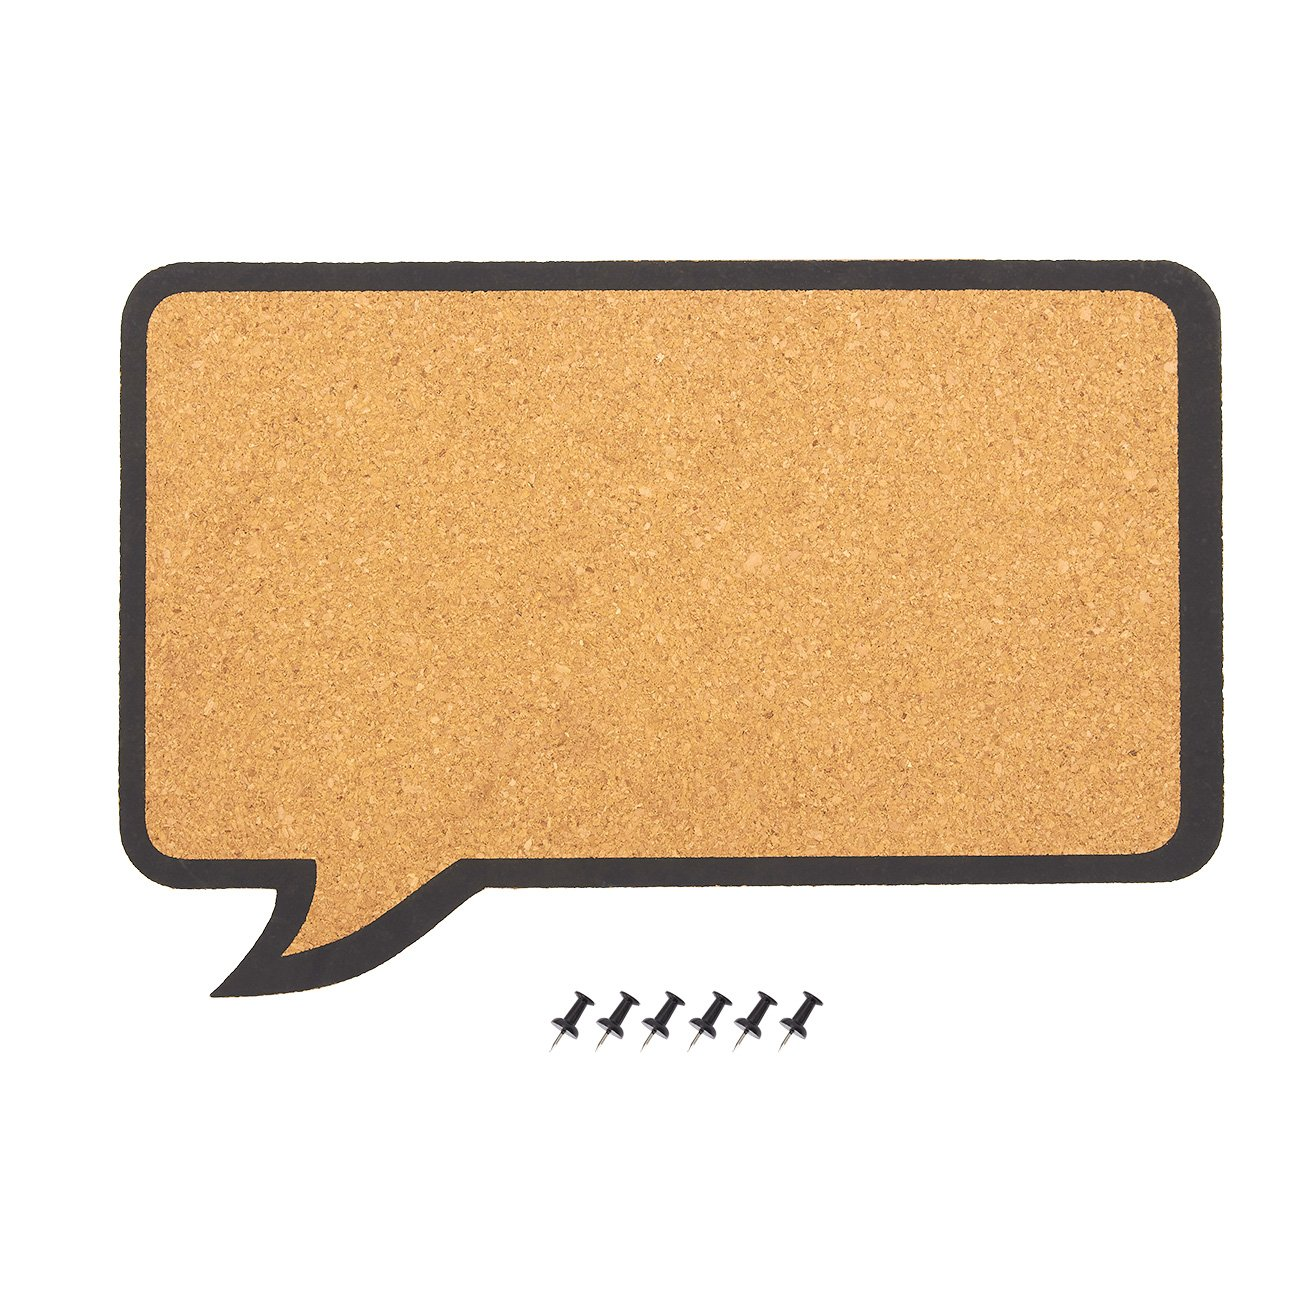 Cork Bulletin Board - Decorative Speech Bubble Natural Cork Board - Includes 6 Push Pins - Perfect for Pinning Memos and Reminders, 17.5 x 11.5 x 0.3 inches Juvale